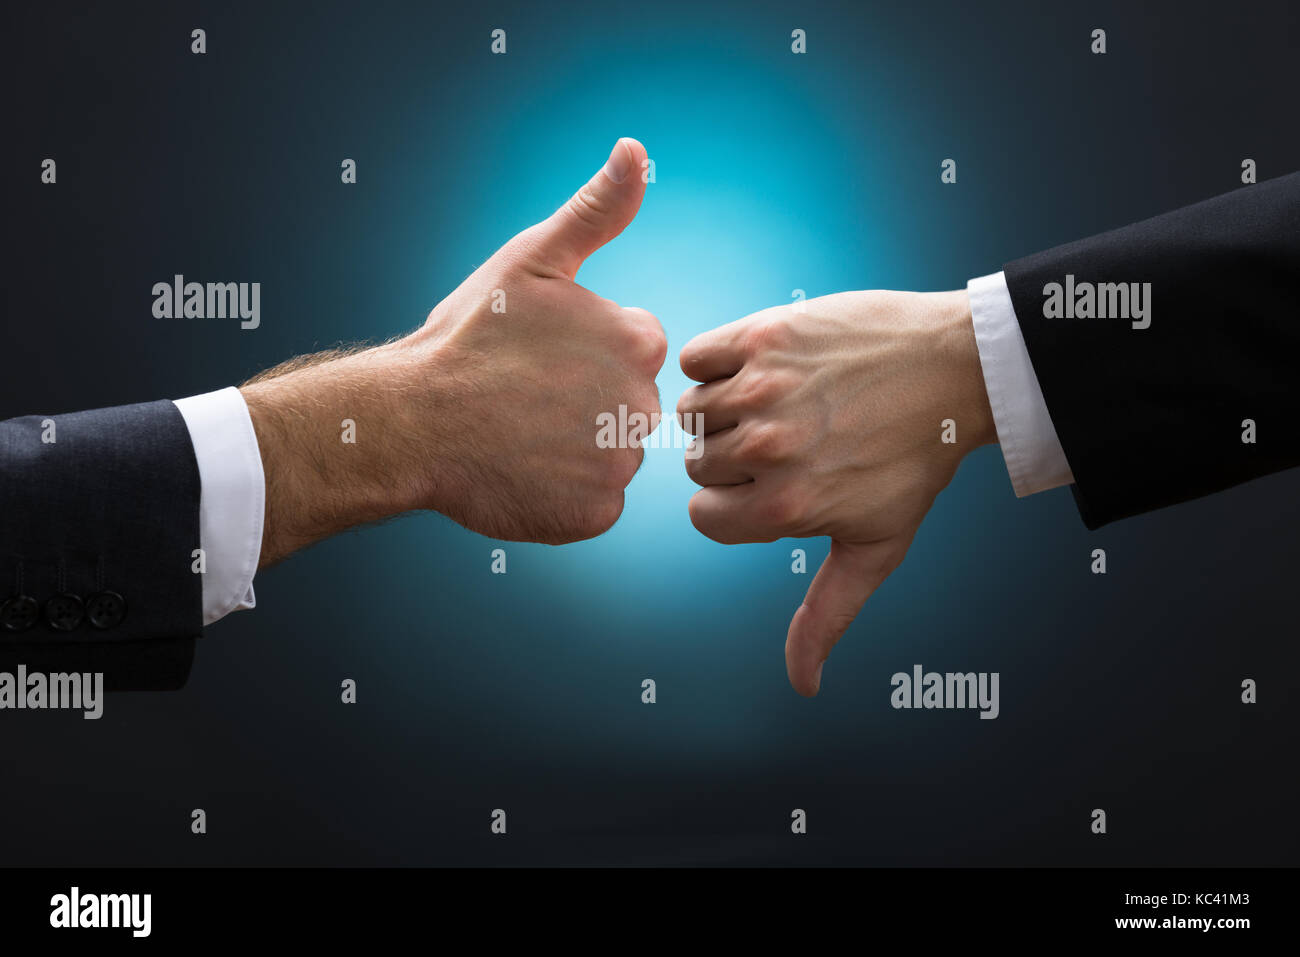 Cropped hands of businessmen showing like and dislike signs against blue background - Stock Image